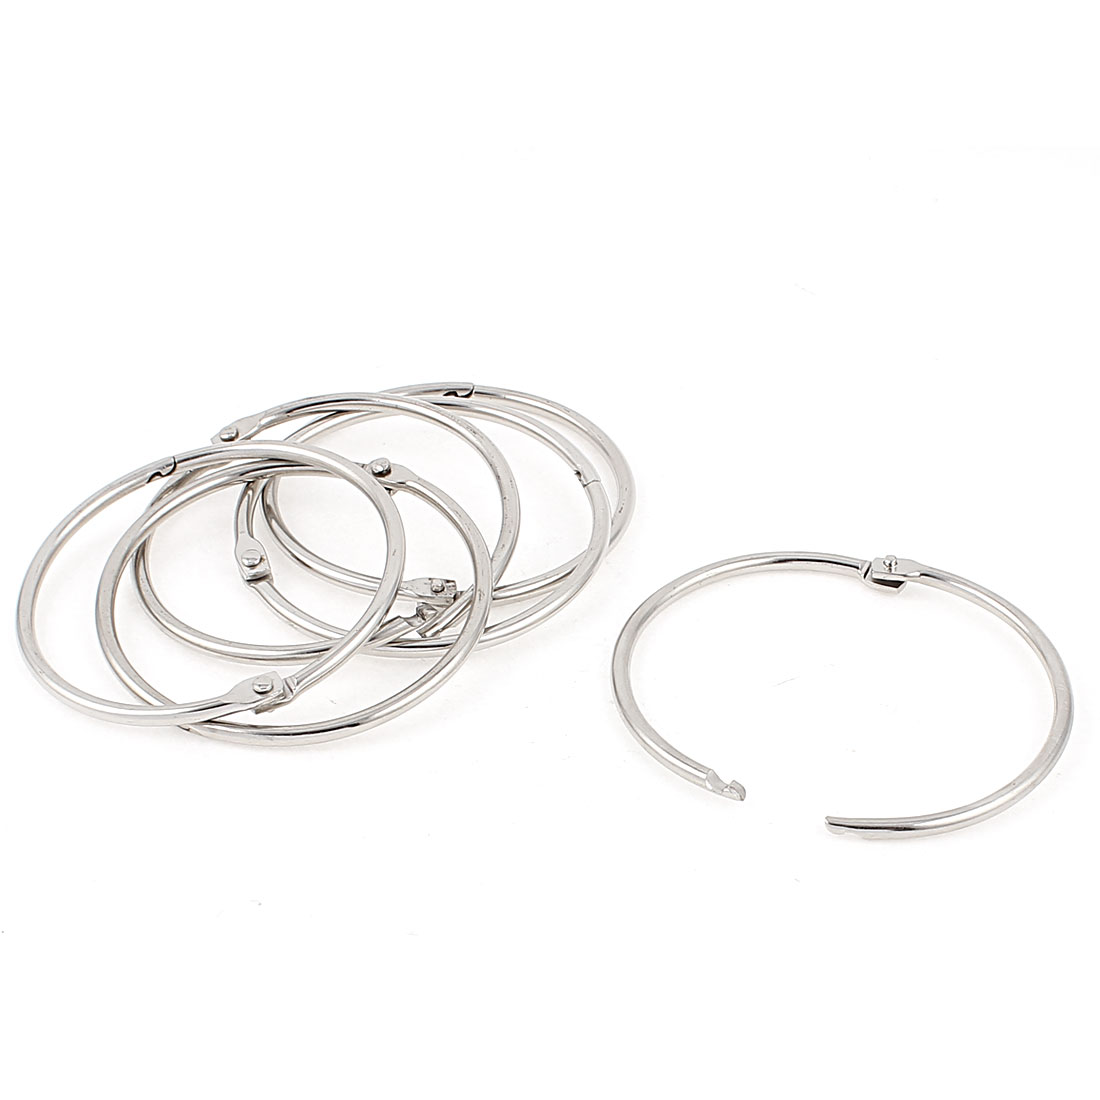 6 Pcs 71mm Diameter Silver Tone Metal Binder Craft Hinged Keyring Split Rings